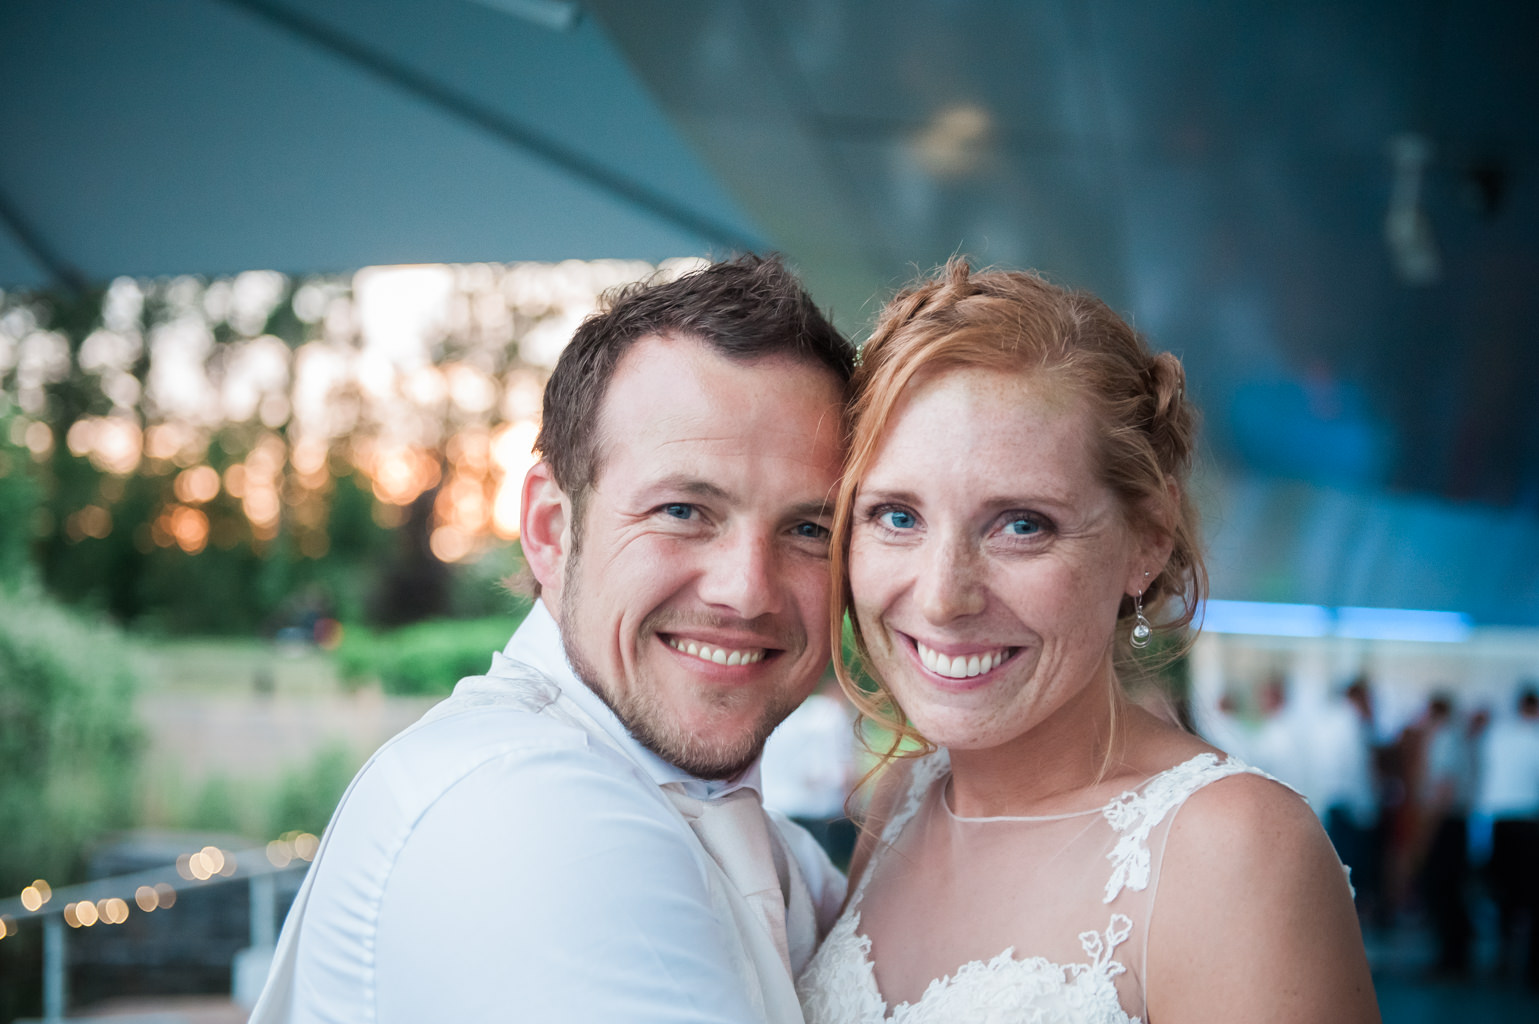 Wedding photography at restaurant Vork & Mes in Hoofddorp